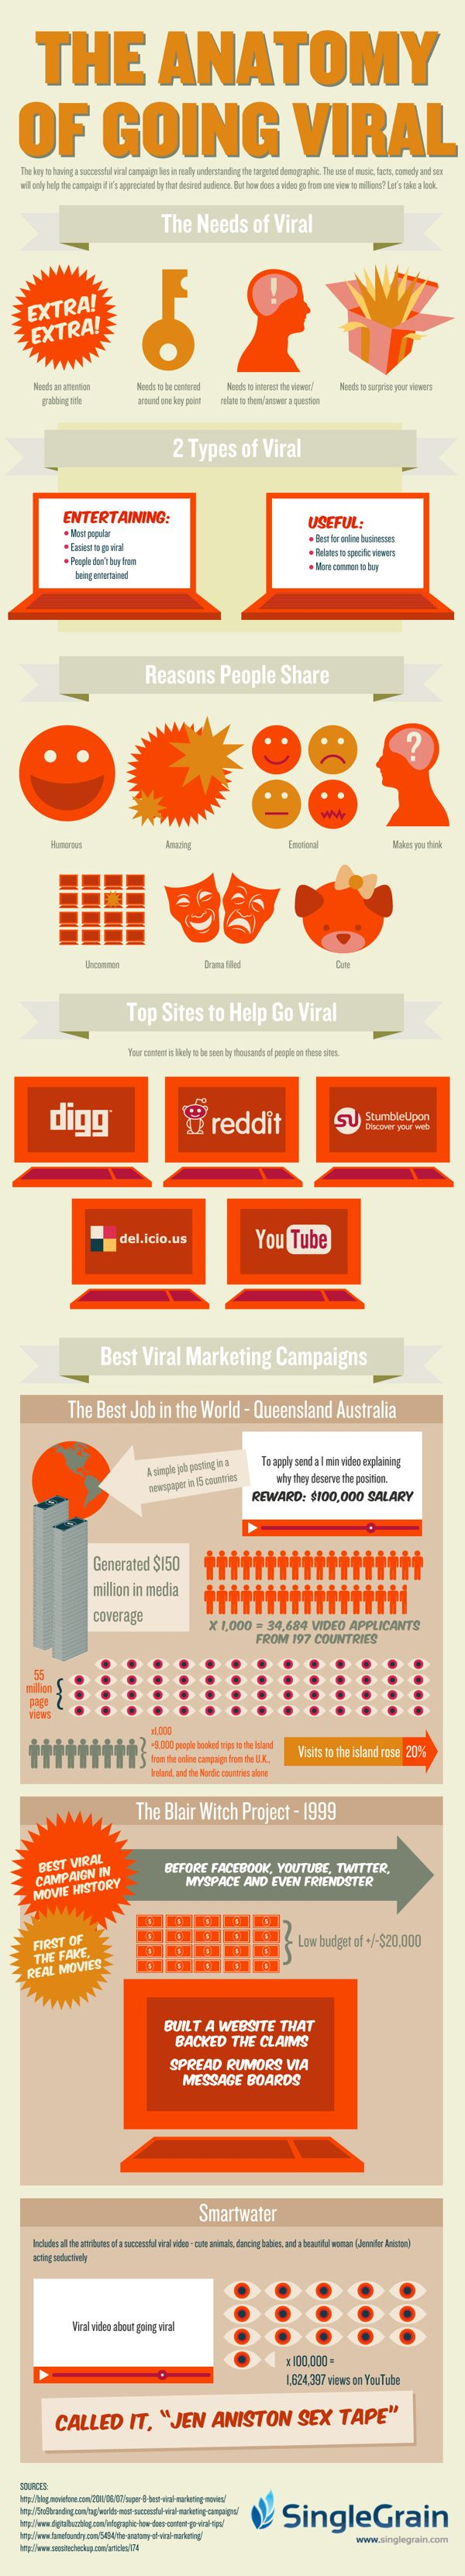 15 Informative 2012 Marketing Infographics.     #UX: The Anatomy of Viral Marketing #GBSMM #UNMARKETING